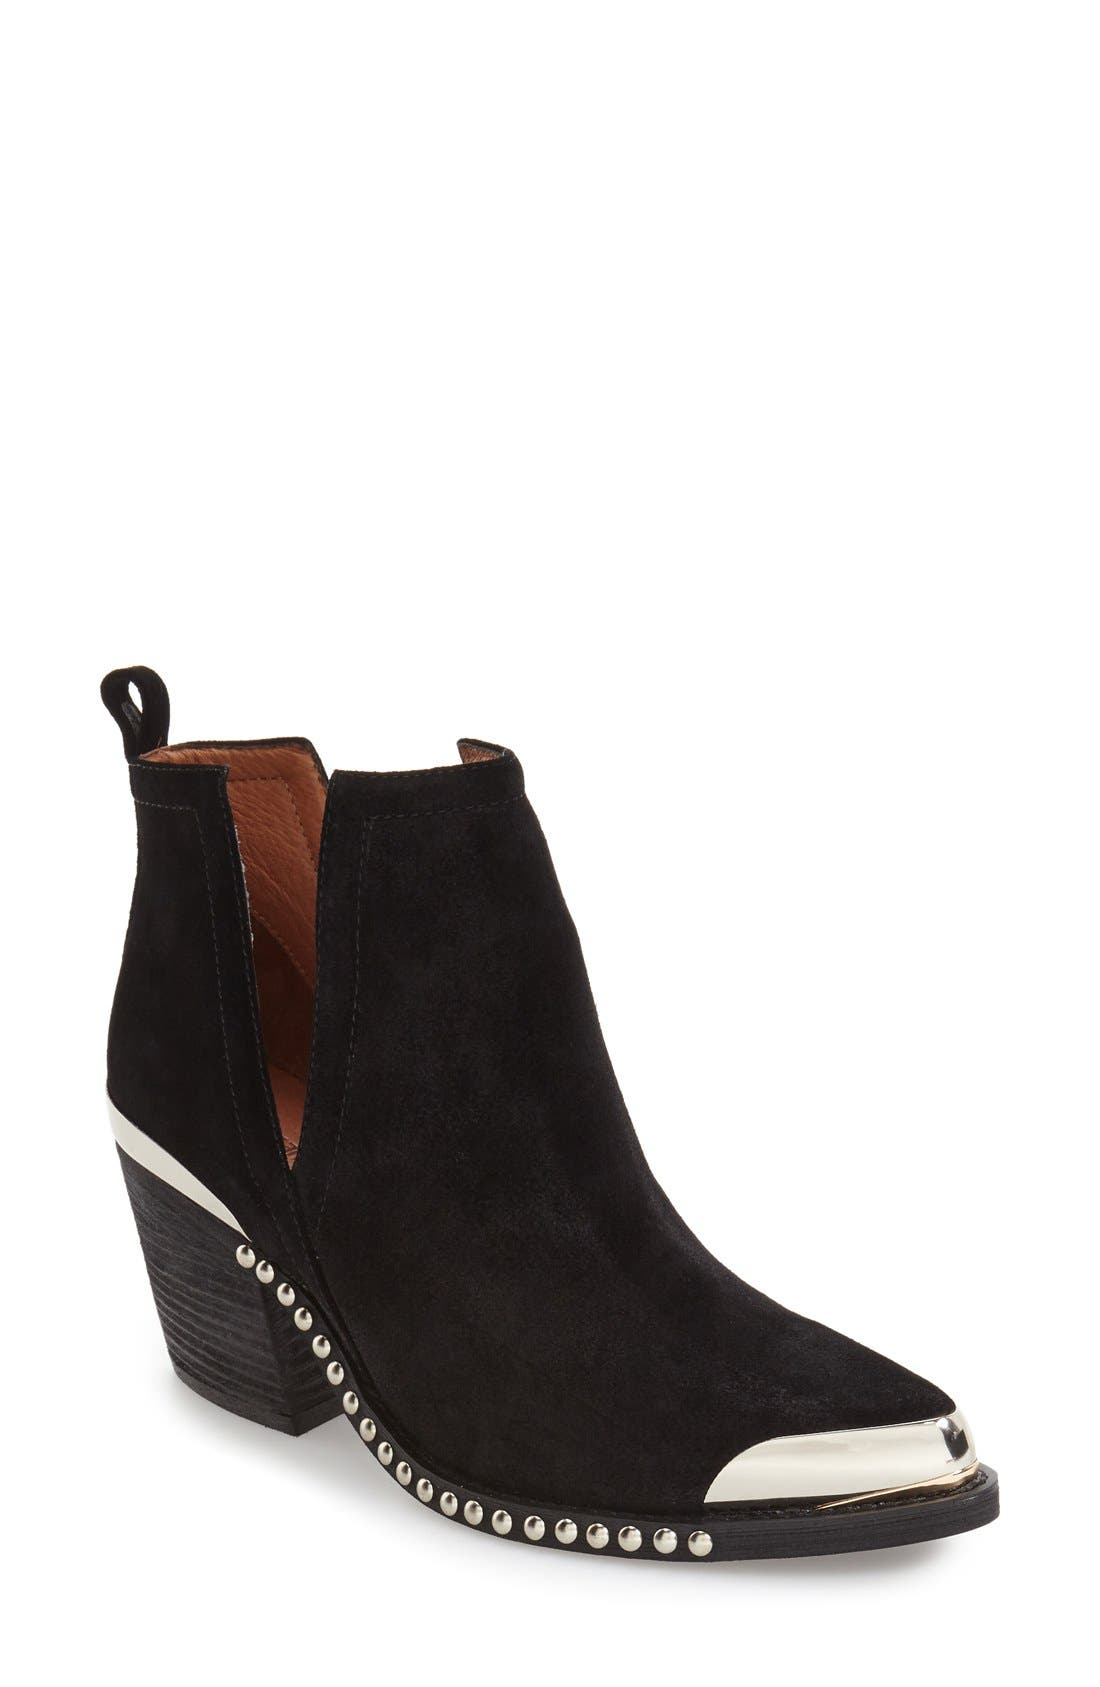 Main Image - Jeffrey Campbell Optimum Pointy Toe Bootie (Women)